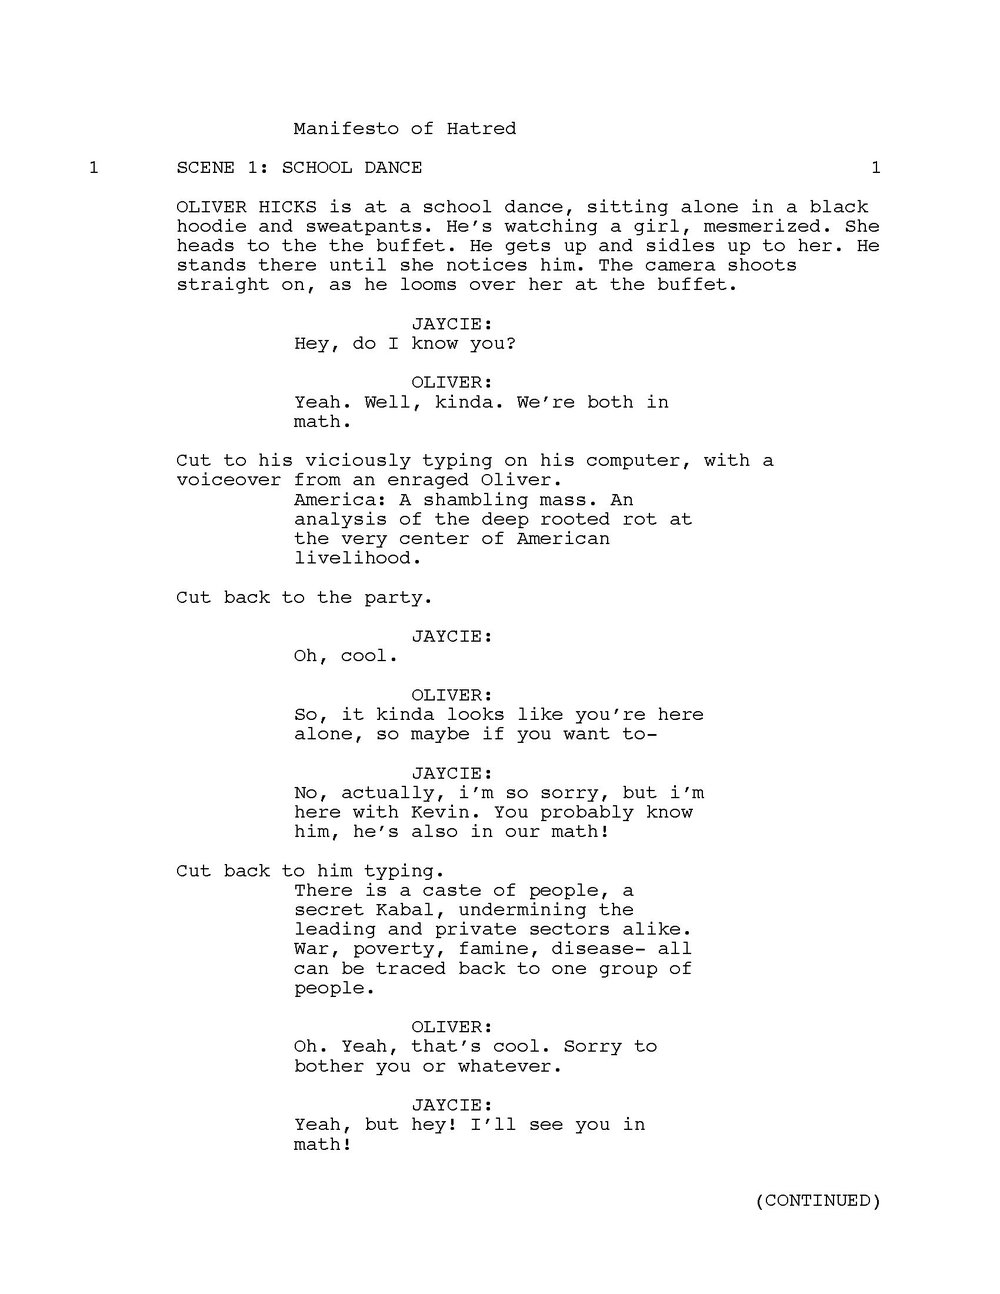 Script Manifesto of Hate (1)_Page_1.jpg